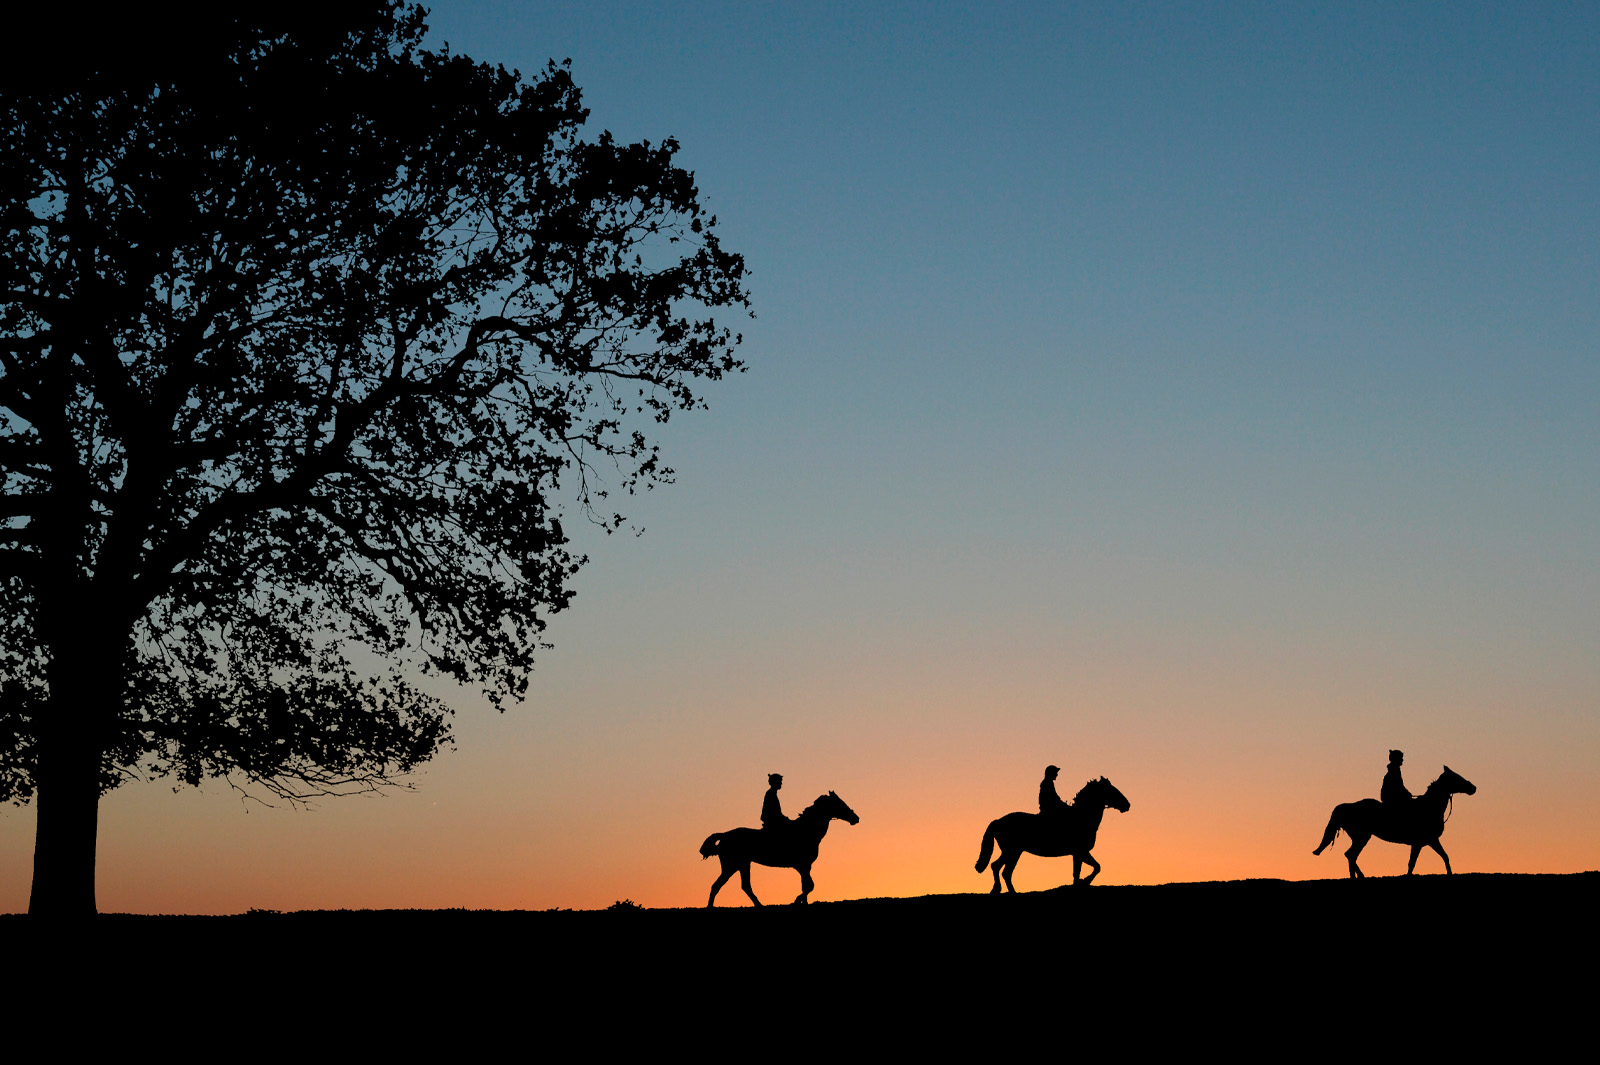 Sunset Horse Riding - photo by Mike Bartlett